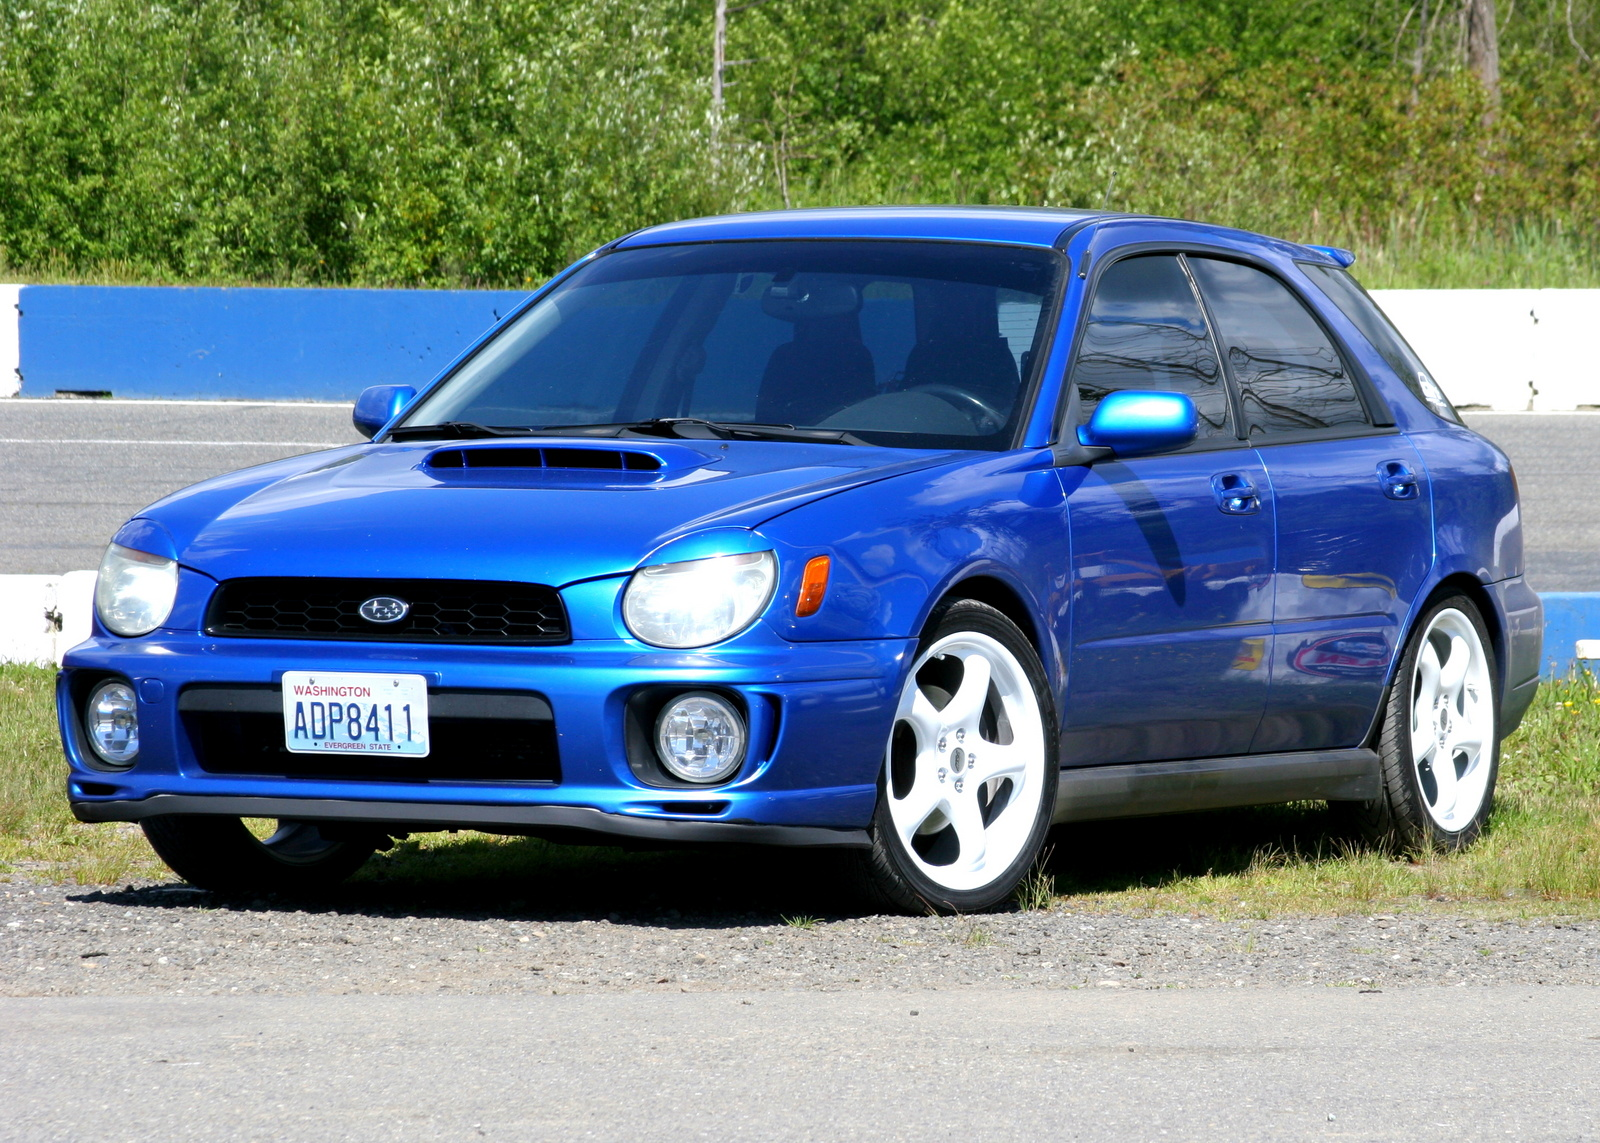 2002 subaru impreza wrx exterior pictures cargurus. Black Bedroom Furniture Sets. Home Design Ideas